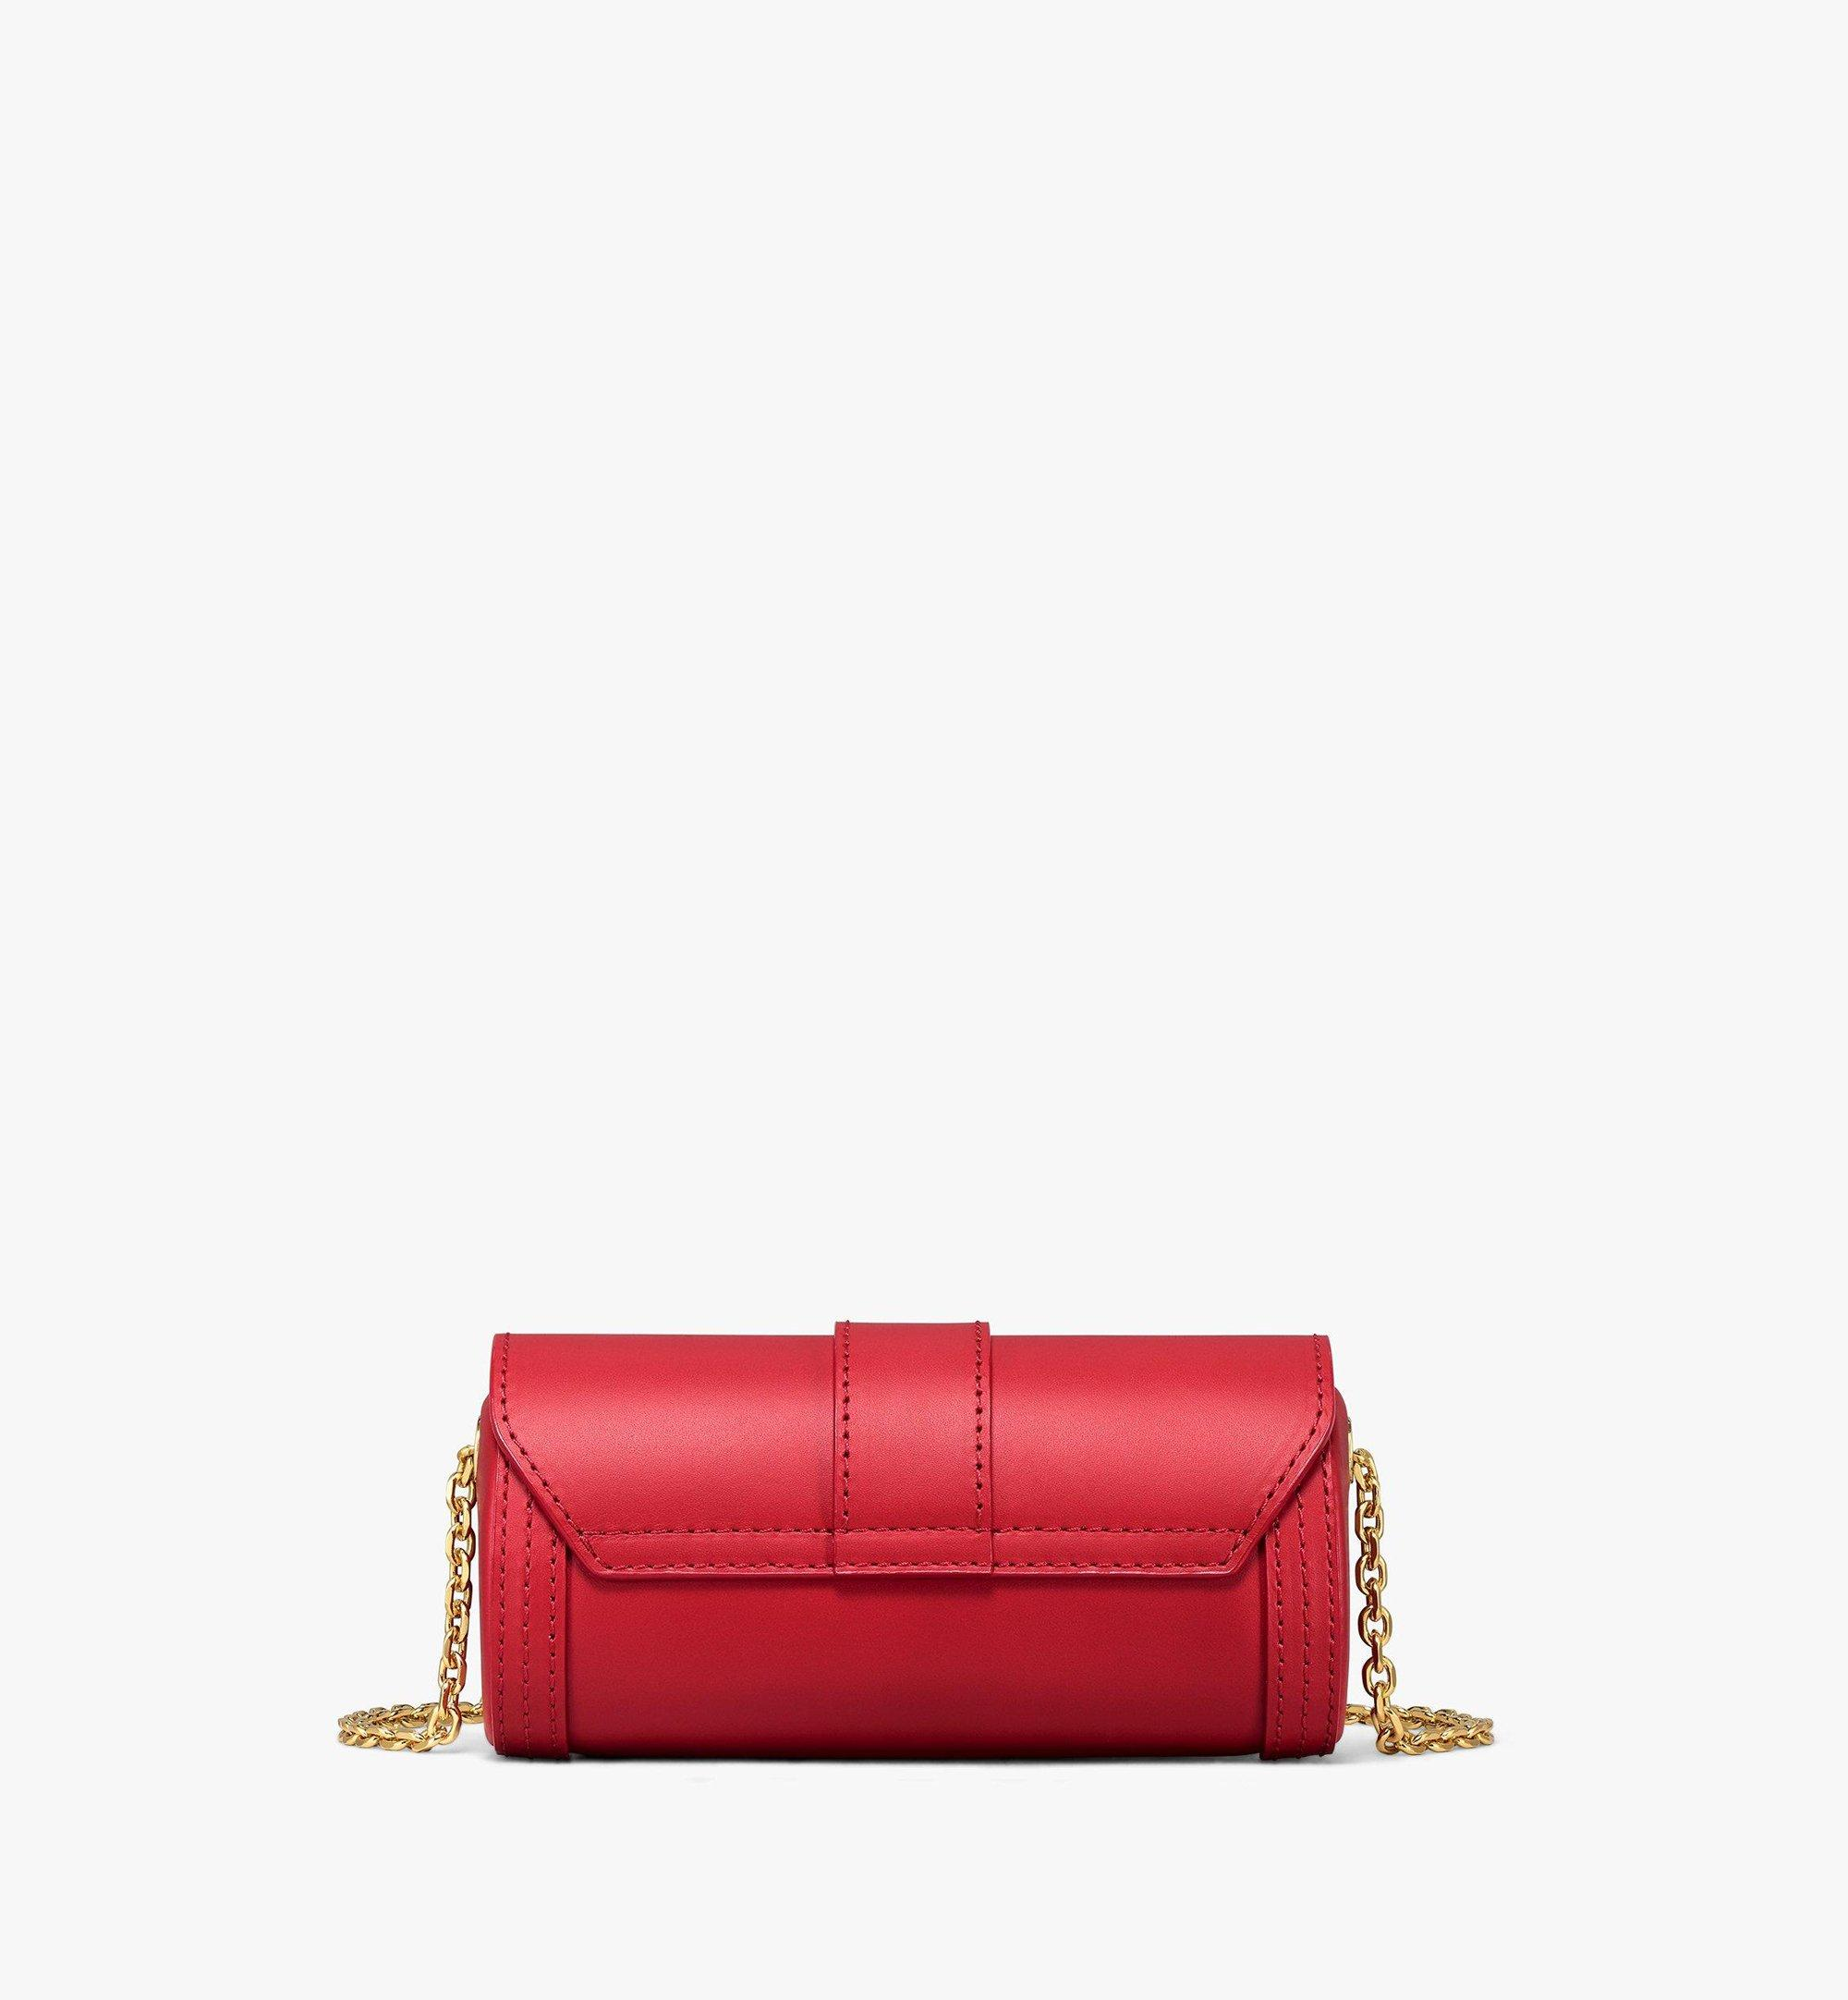 MCM Tracy Cylinder Bag in Vachetta Leather Red MYZBSXT02RU001 Alternate View 3